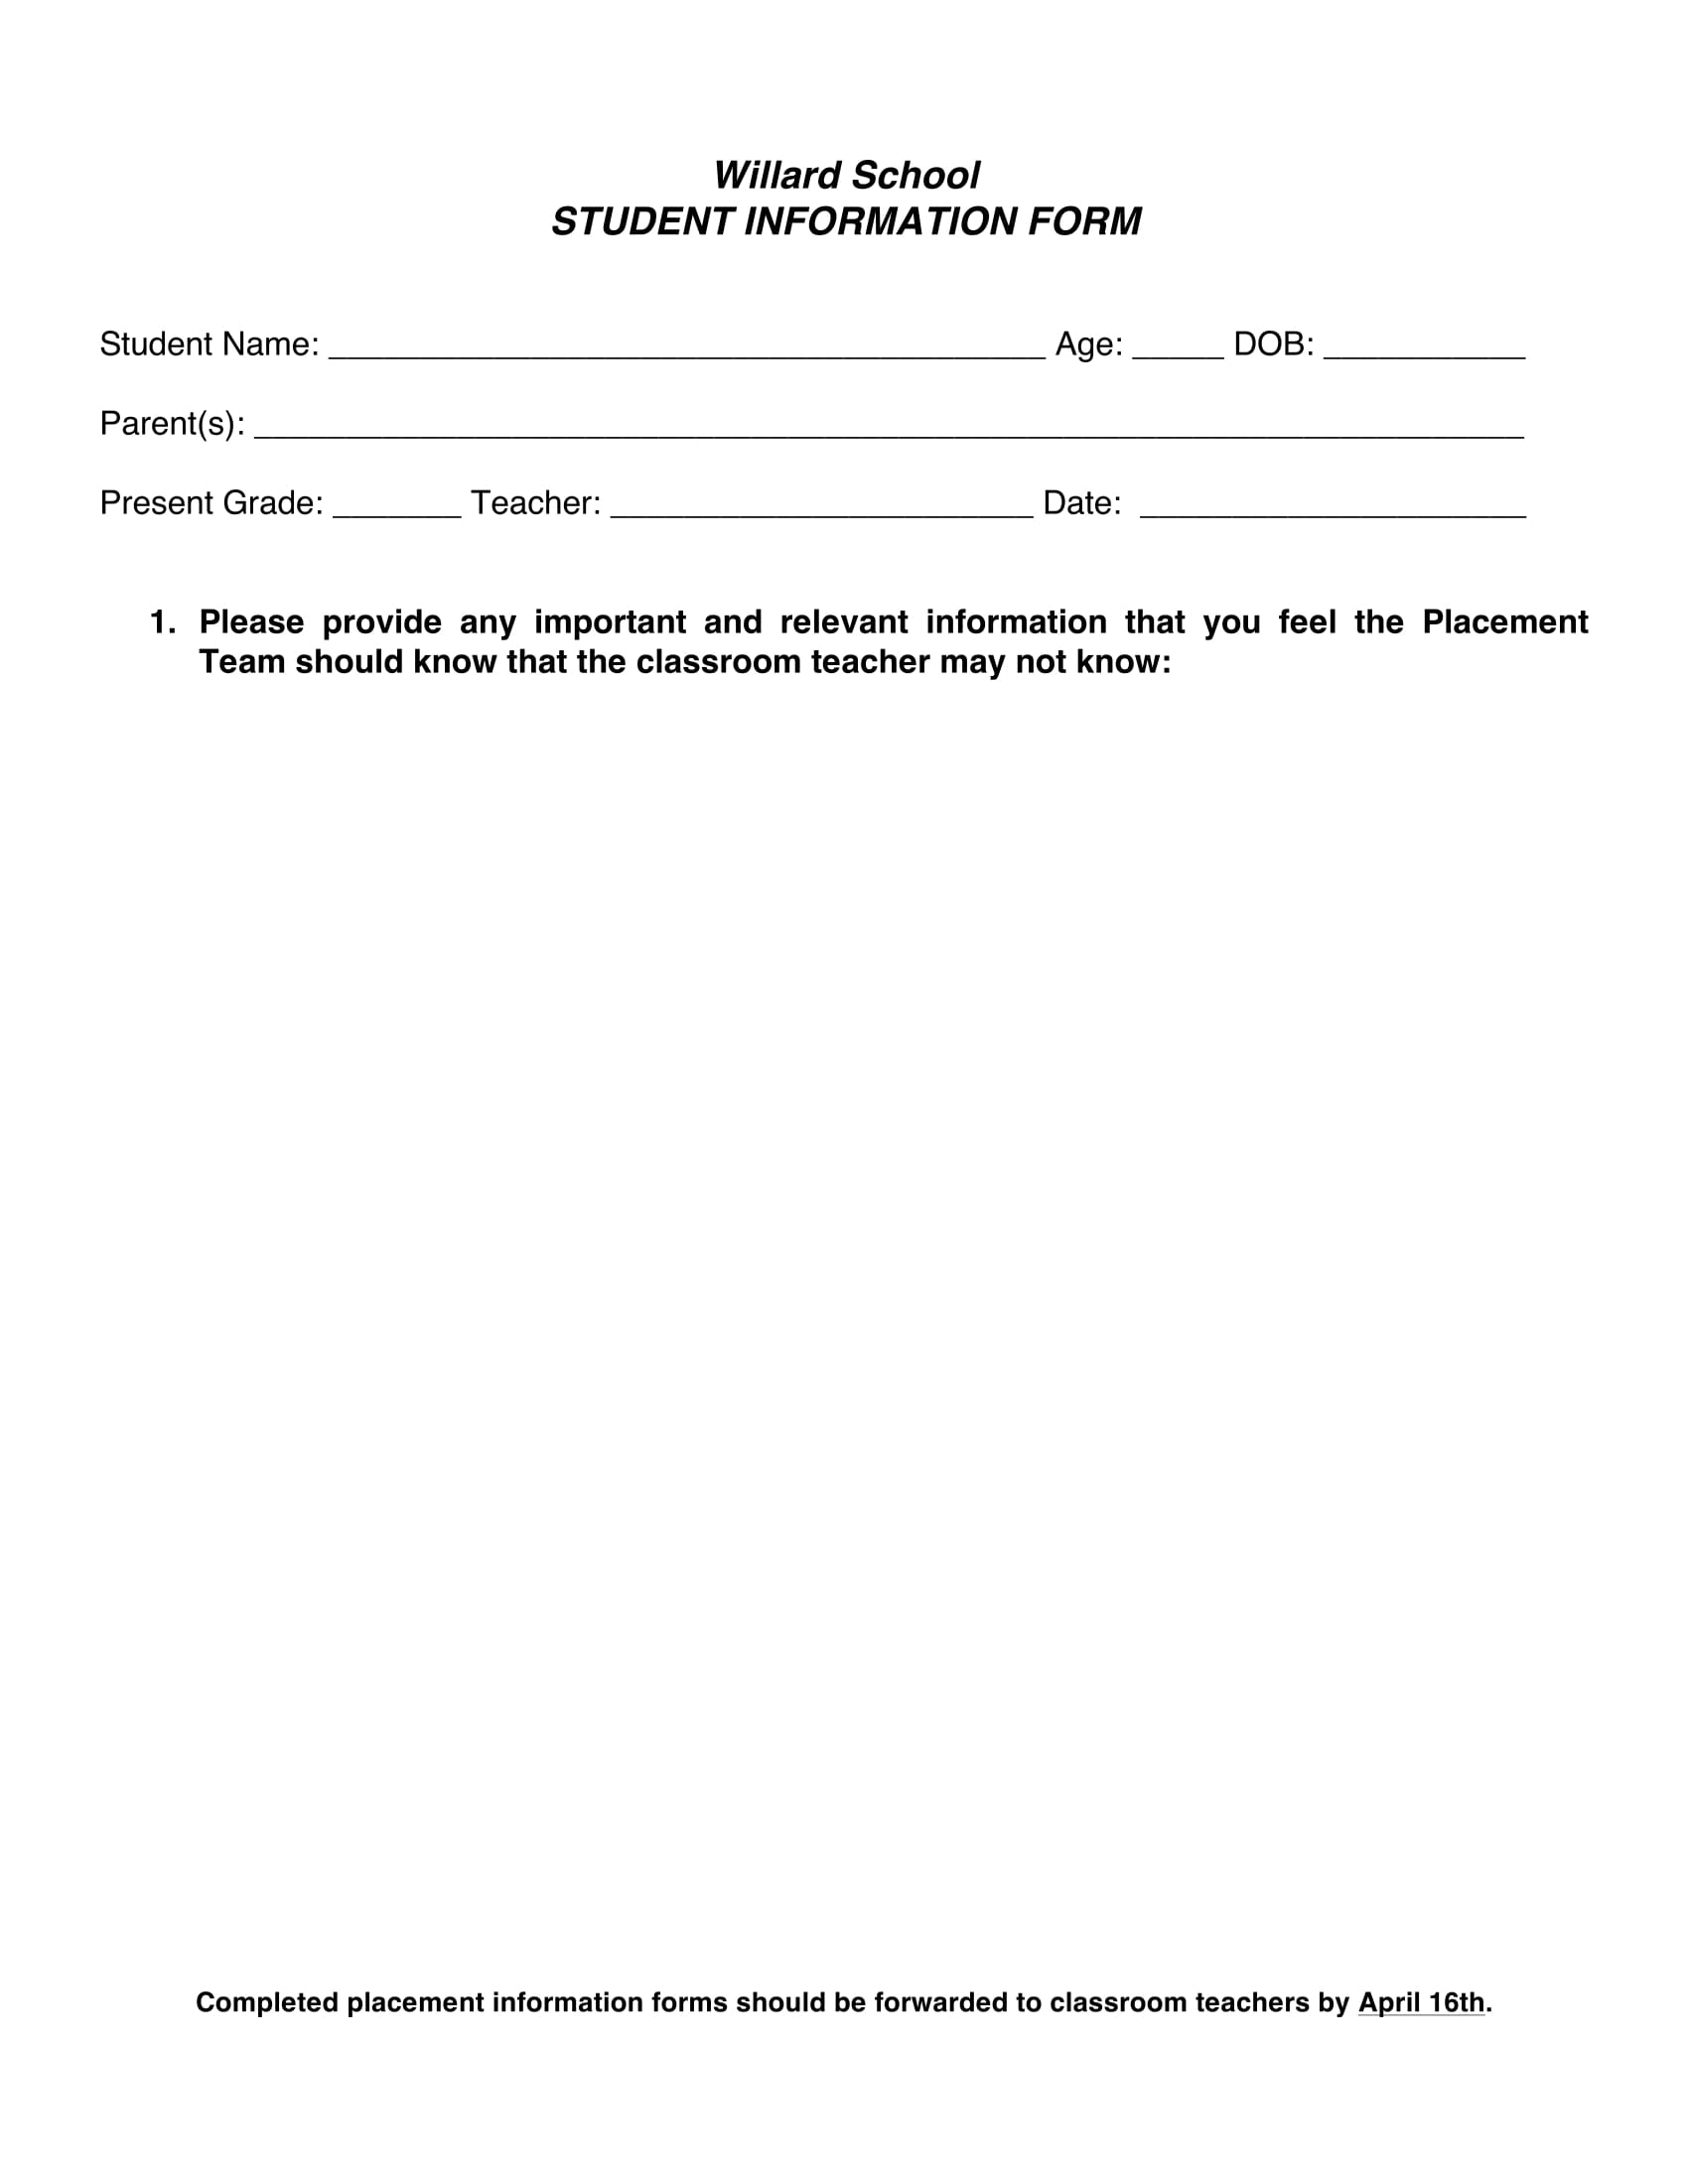 basic student information form 1